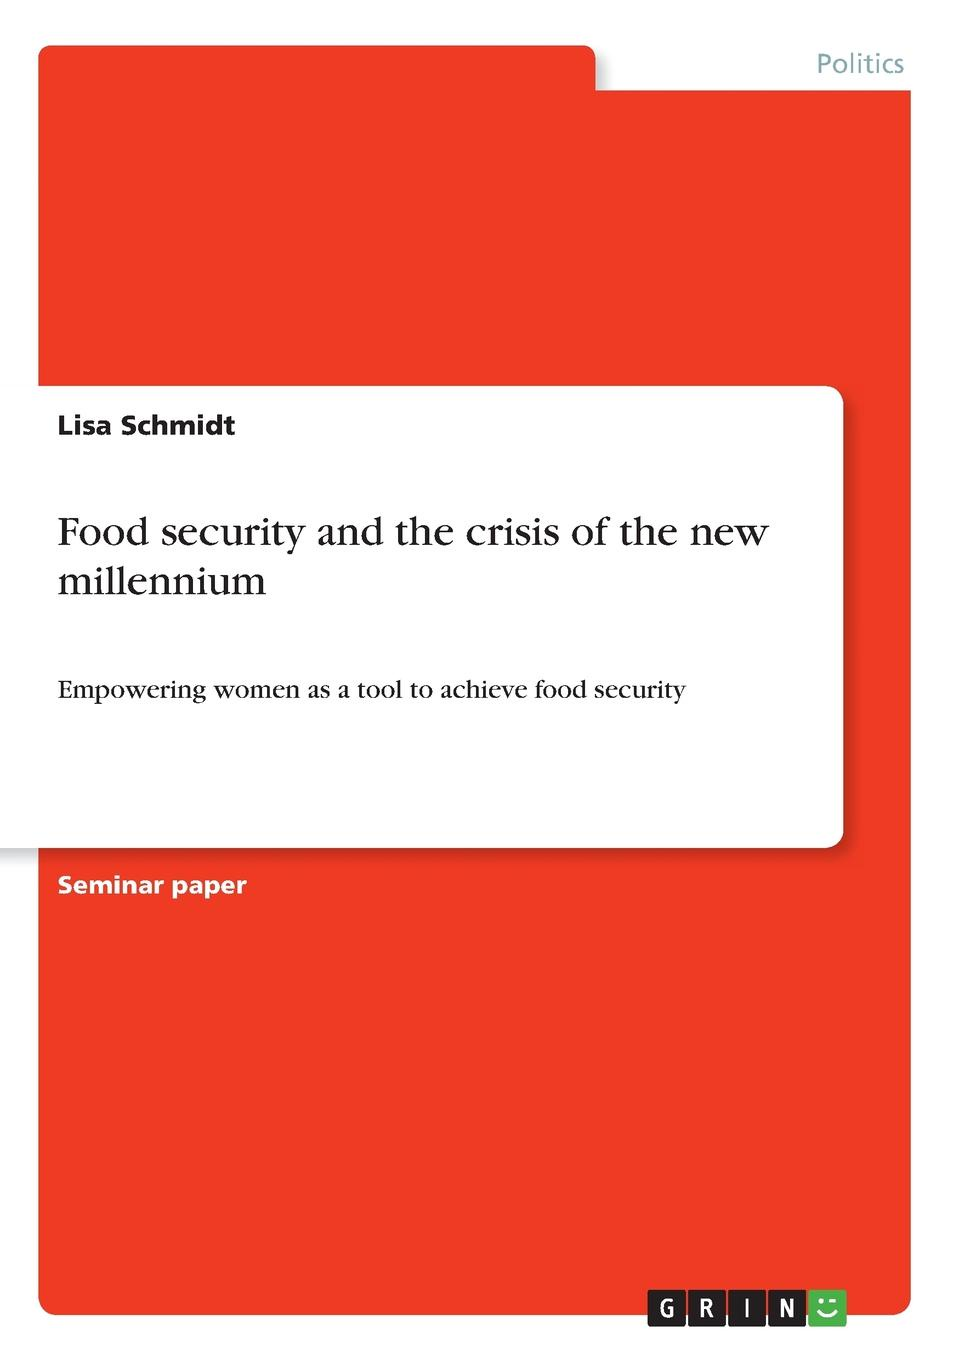 купить Lisa Schmidt Food security and the crisis of the new millennium онлайн